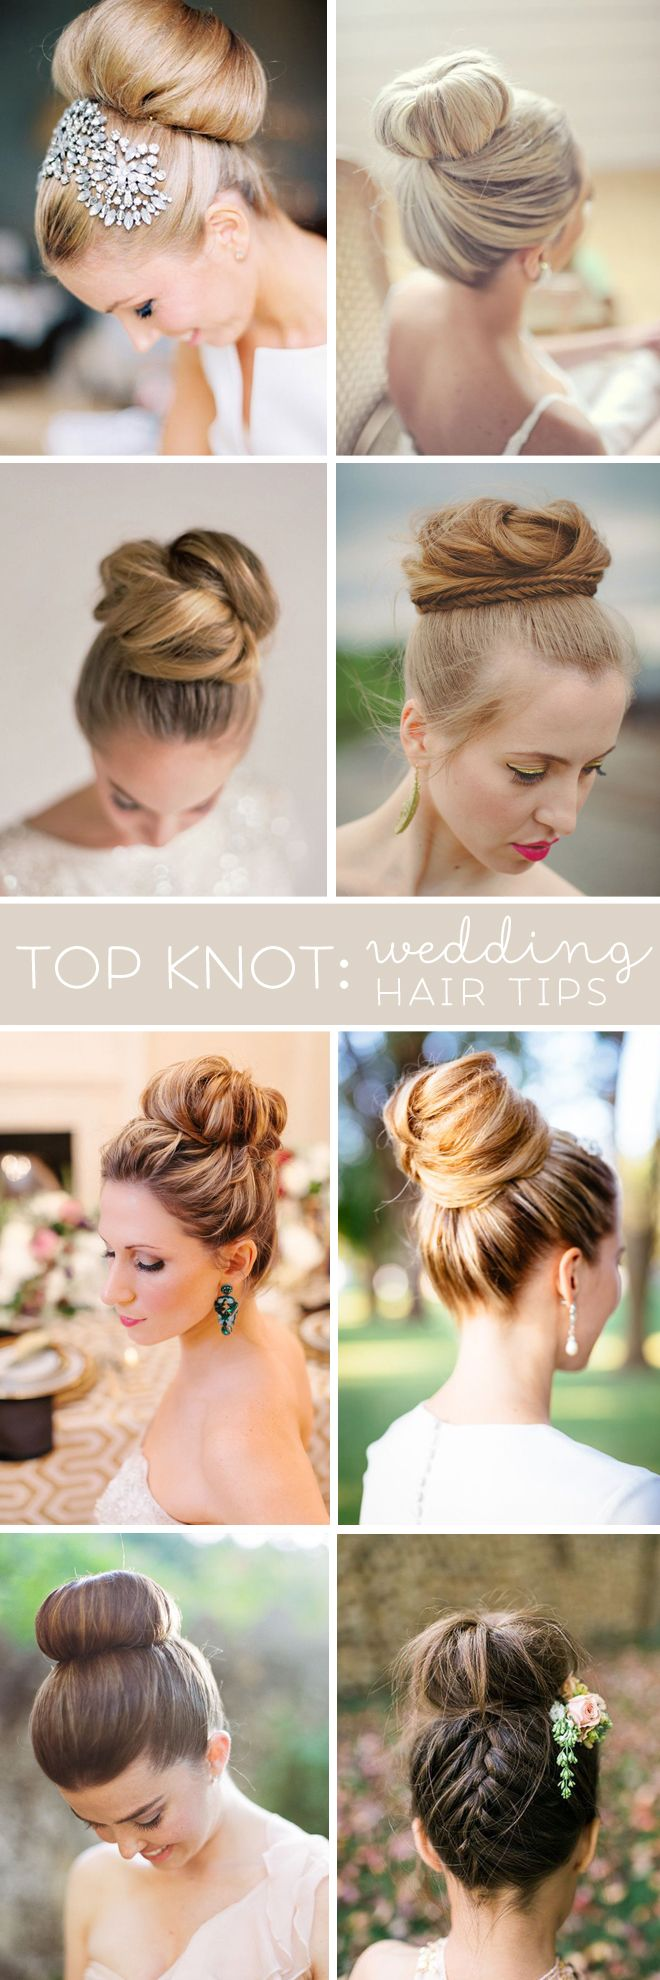 best new wedding hair ideas images on pinterest homecoming